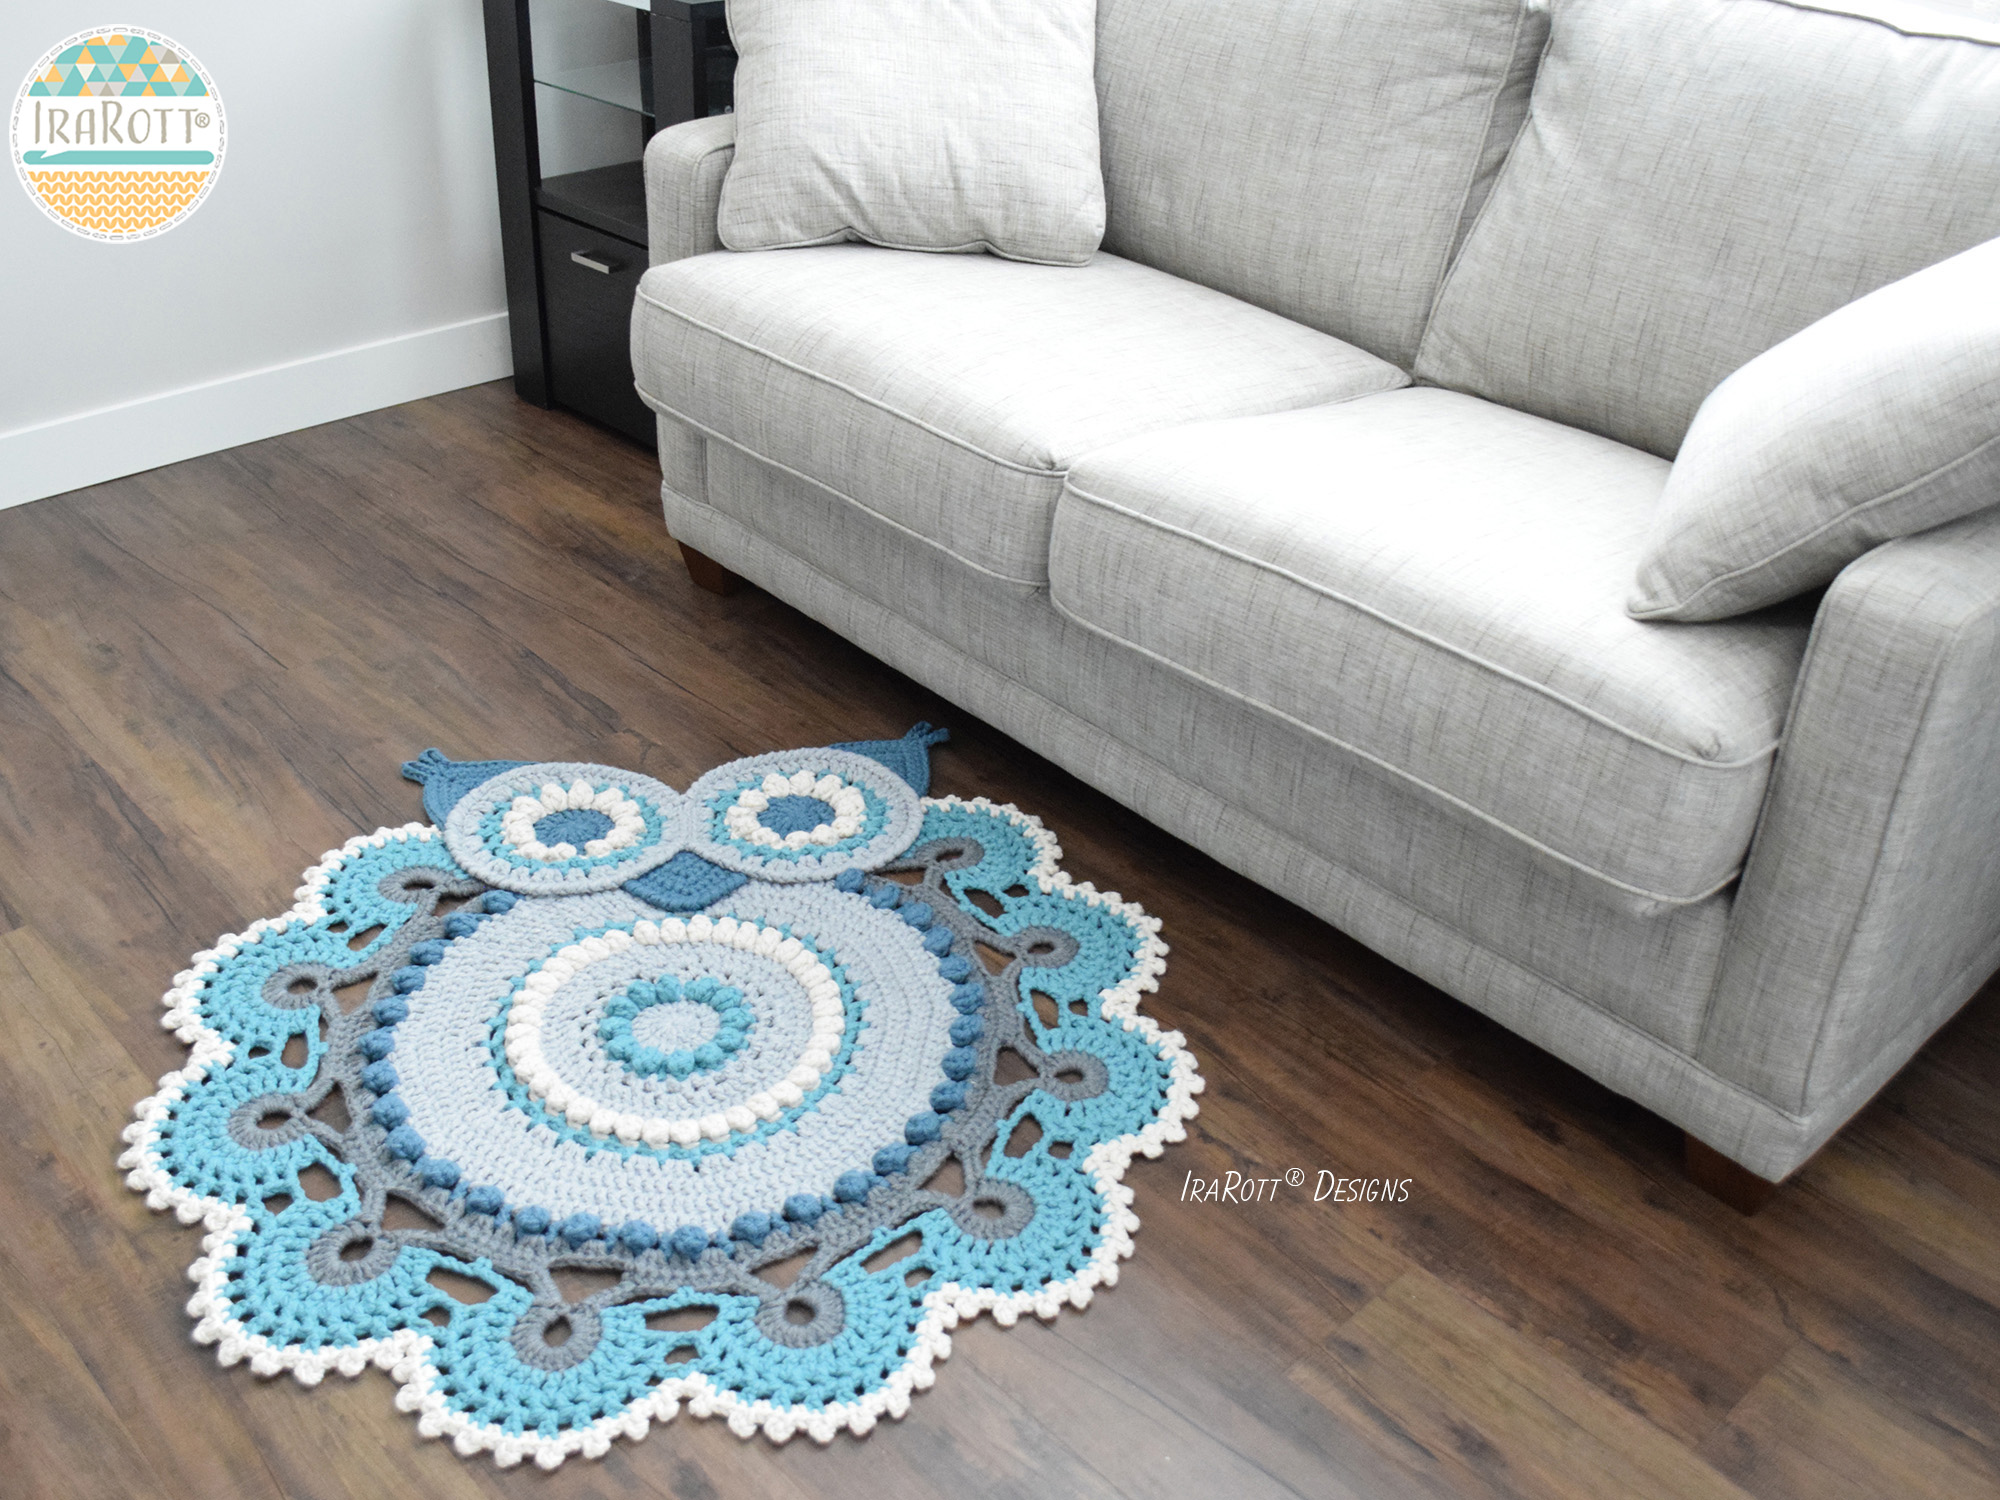 Crochet Patterns Free Rugs : Retro Owl Rug or Doily Rug PDF Crochet Pattern - IraRott Inc.